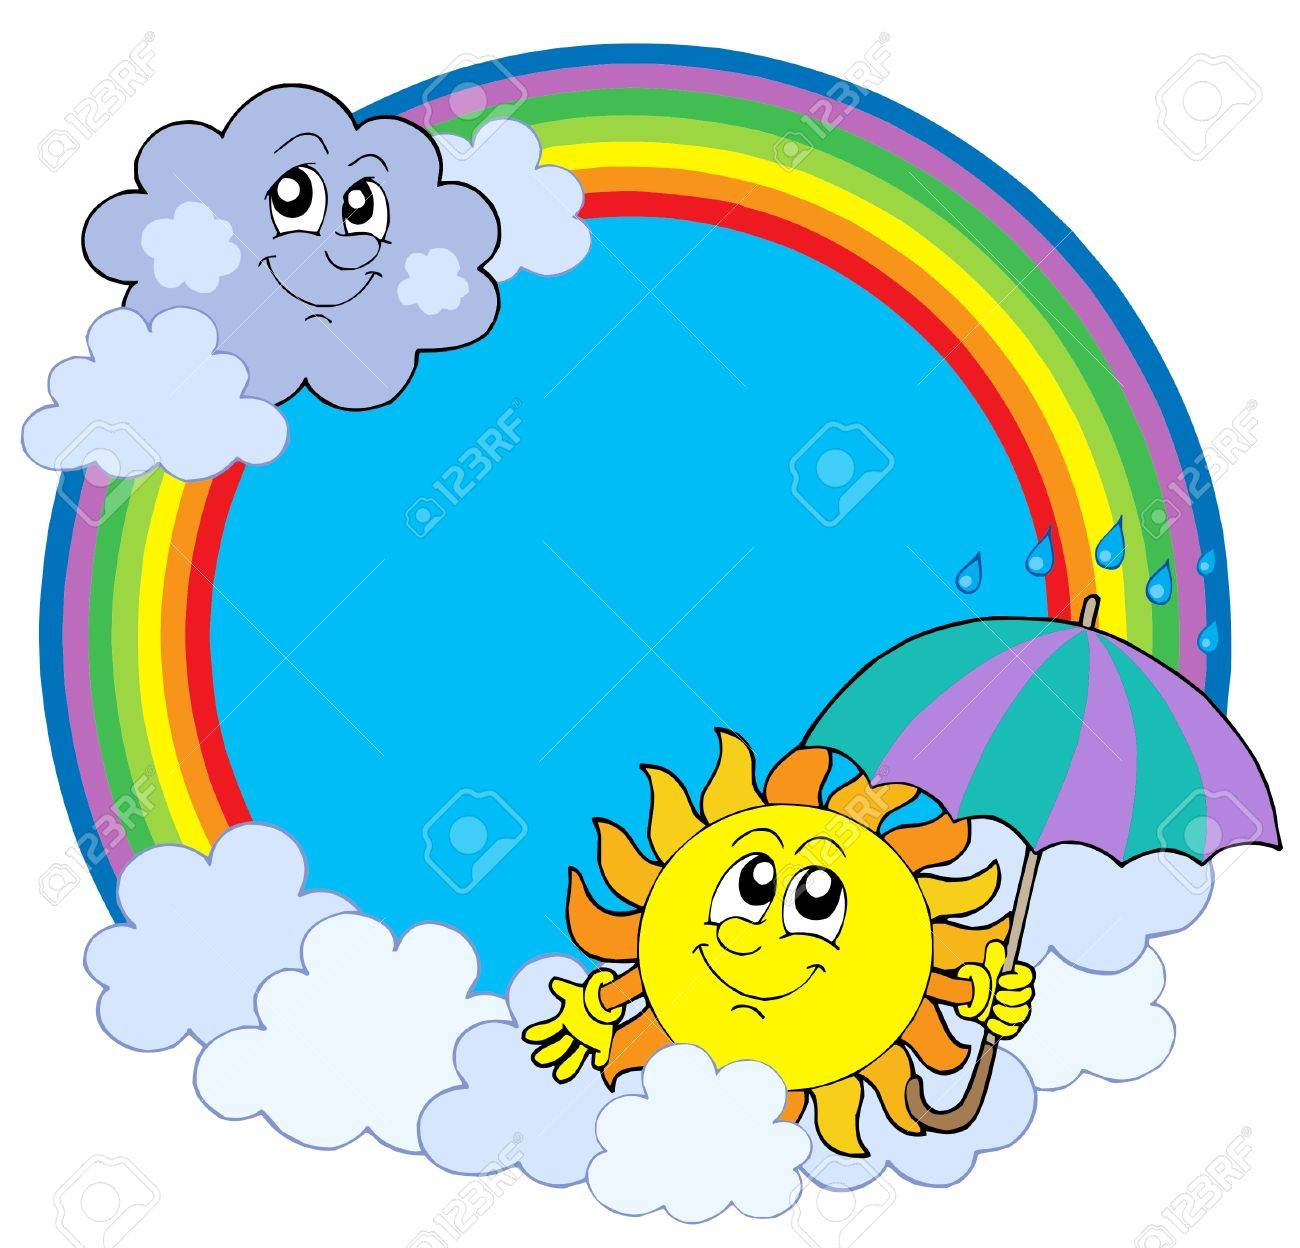 hight resolution of sun and clouds in rainbow circle vector illustration stock vector 4150936